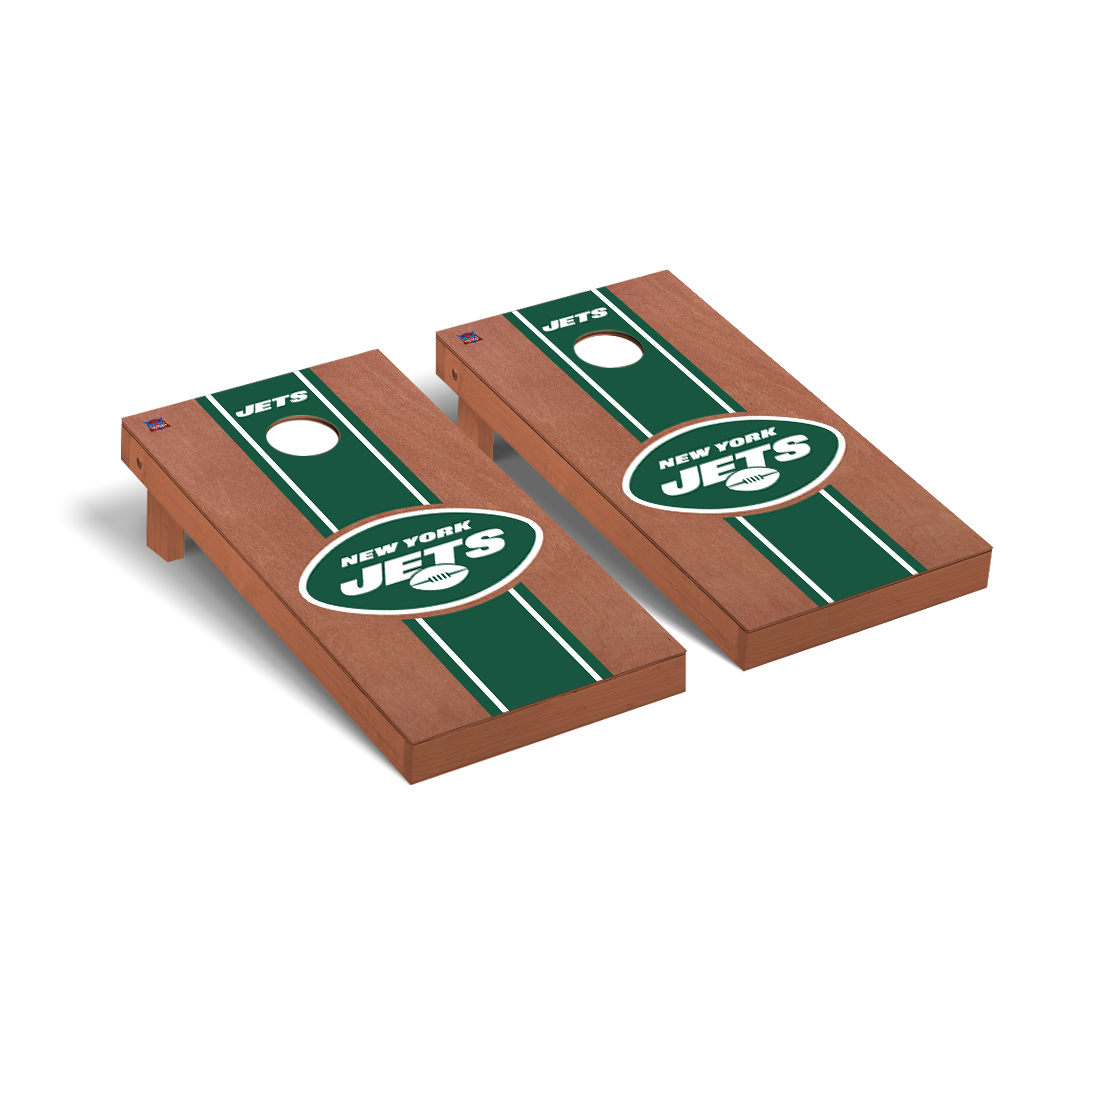 New York Jets NFL Football Cornhole Game Set Rosewood Stained Stripe Version 2